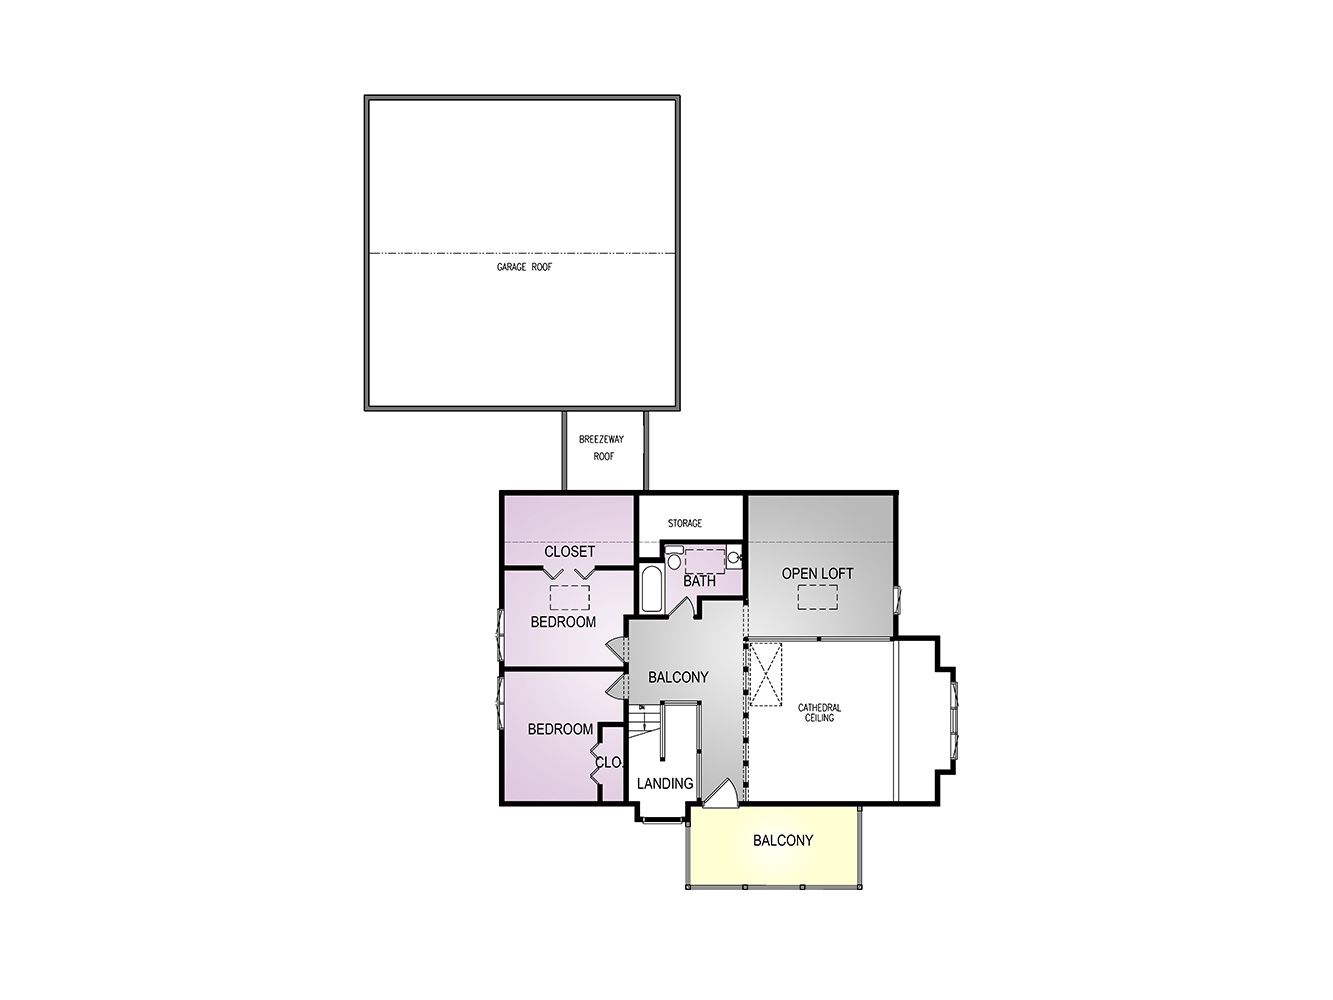 Timberline-LOFT-PLAN.jpg